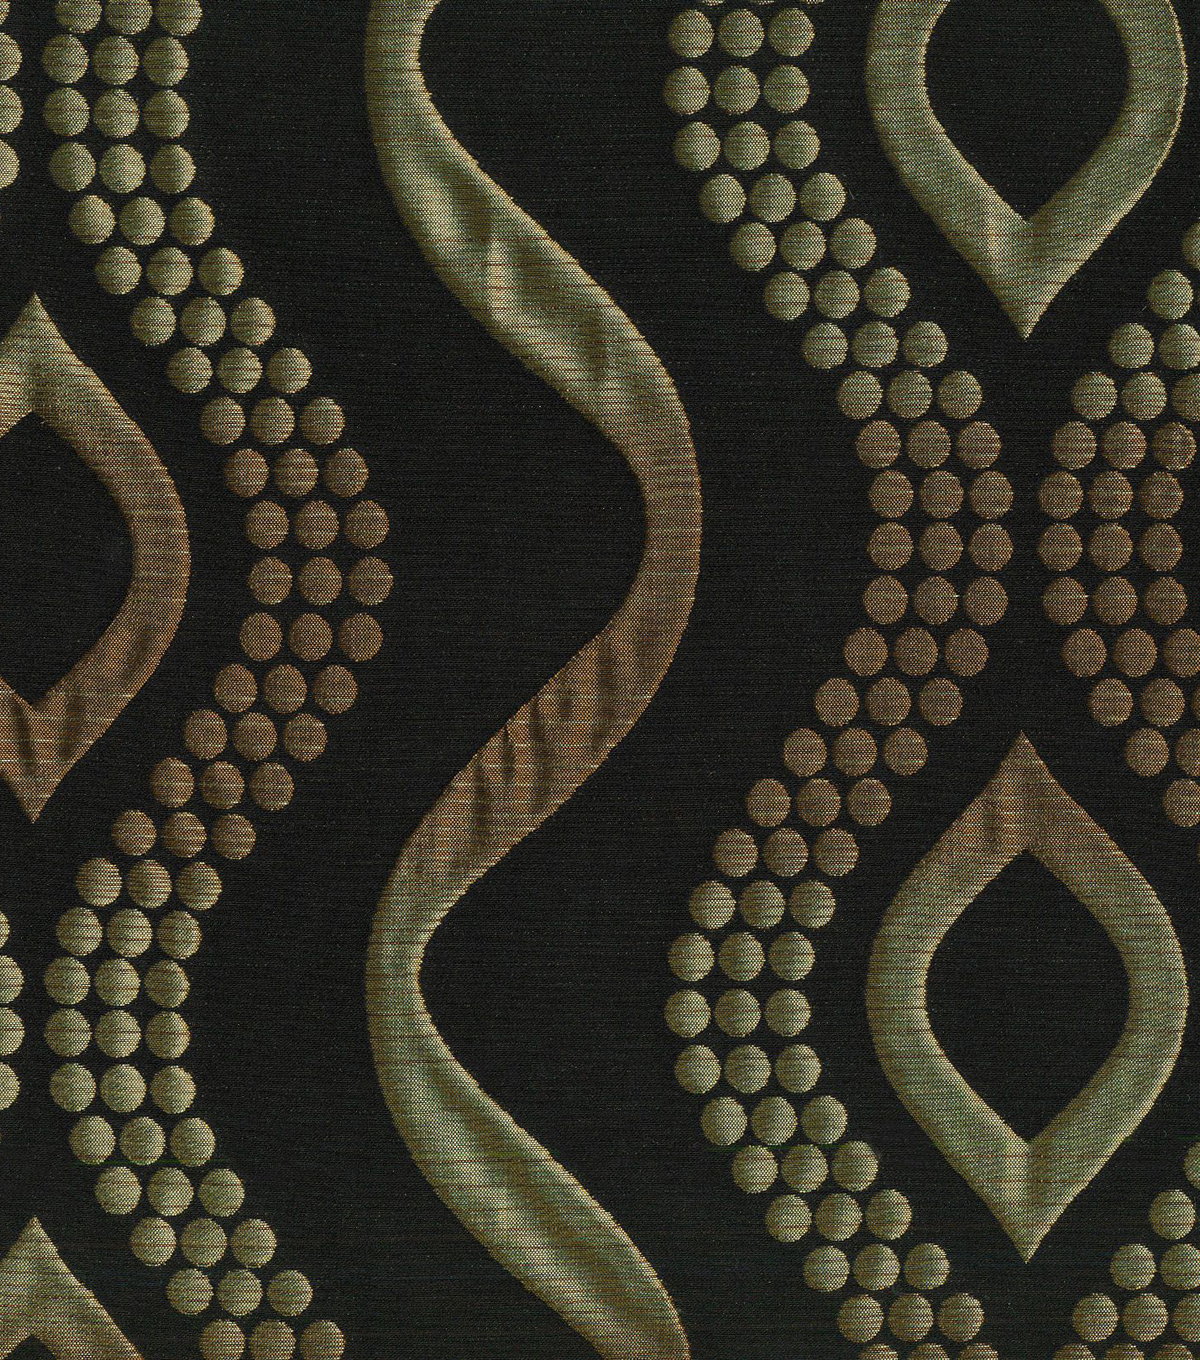 Home Decor 8\u0022x8\u0022 Fabric Swatch-Elite Caprizzio Ebony